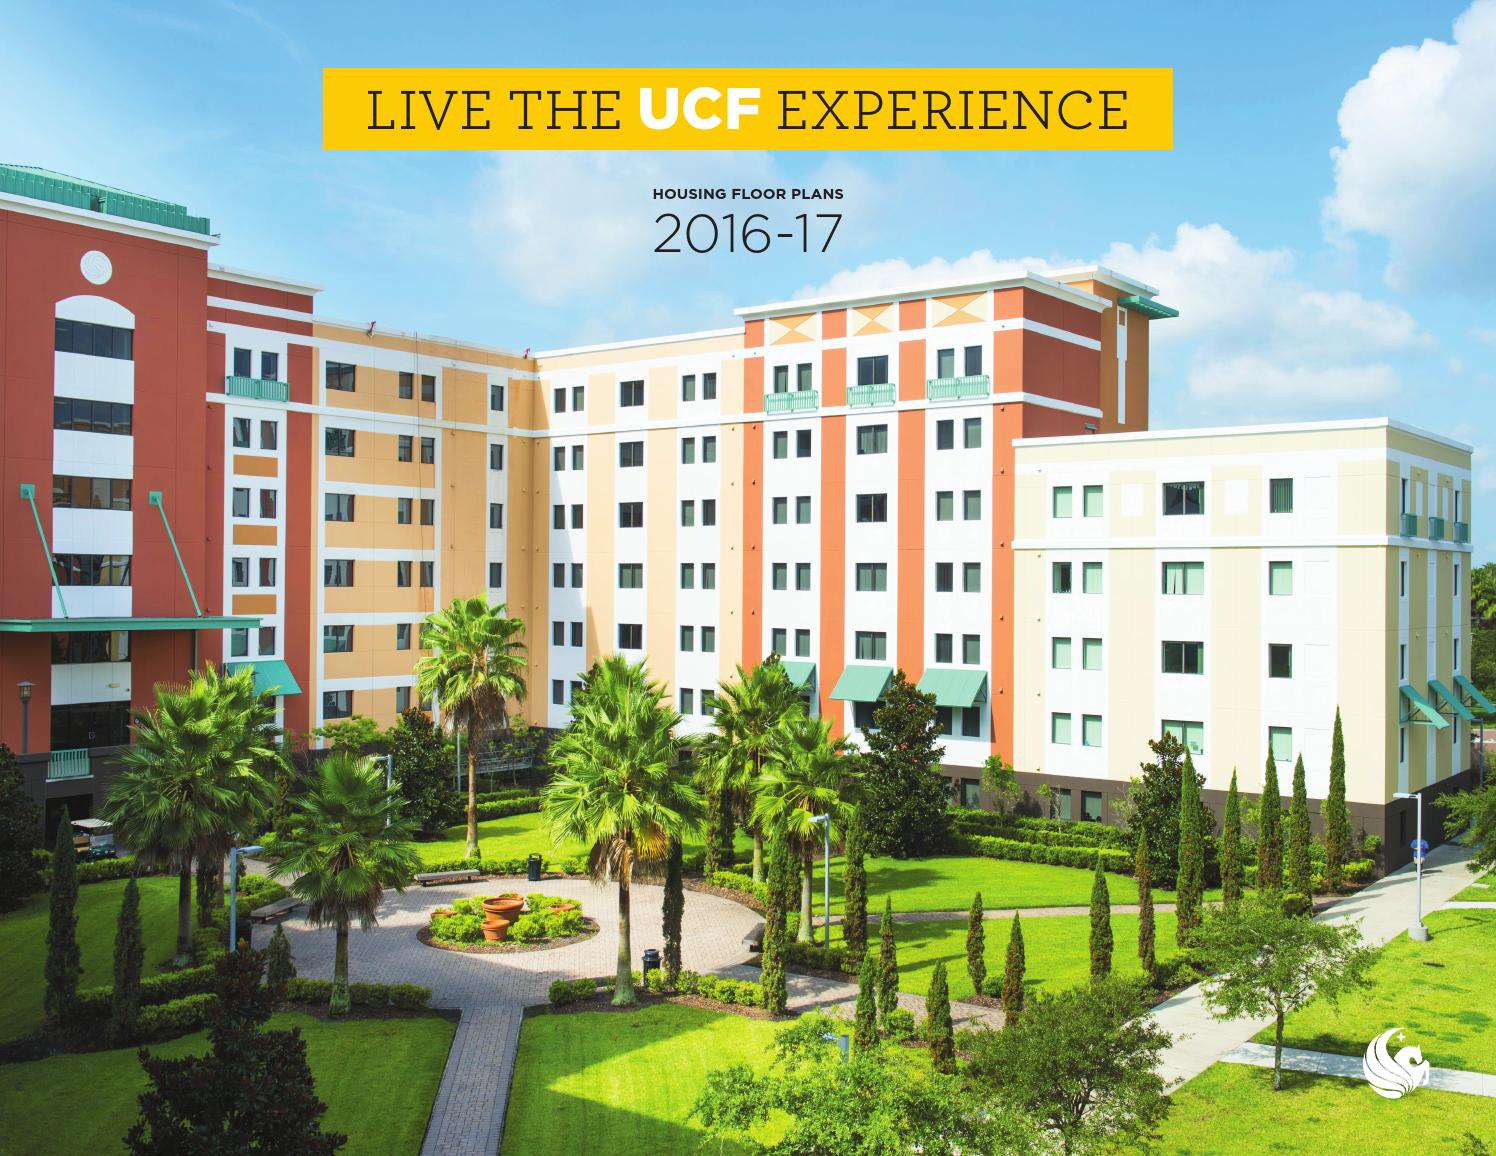 3 Bedroom Apartments Utilities Included Ucf Housing Floorplans 2016 17 By University Of Central